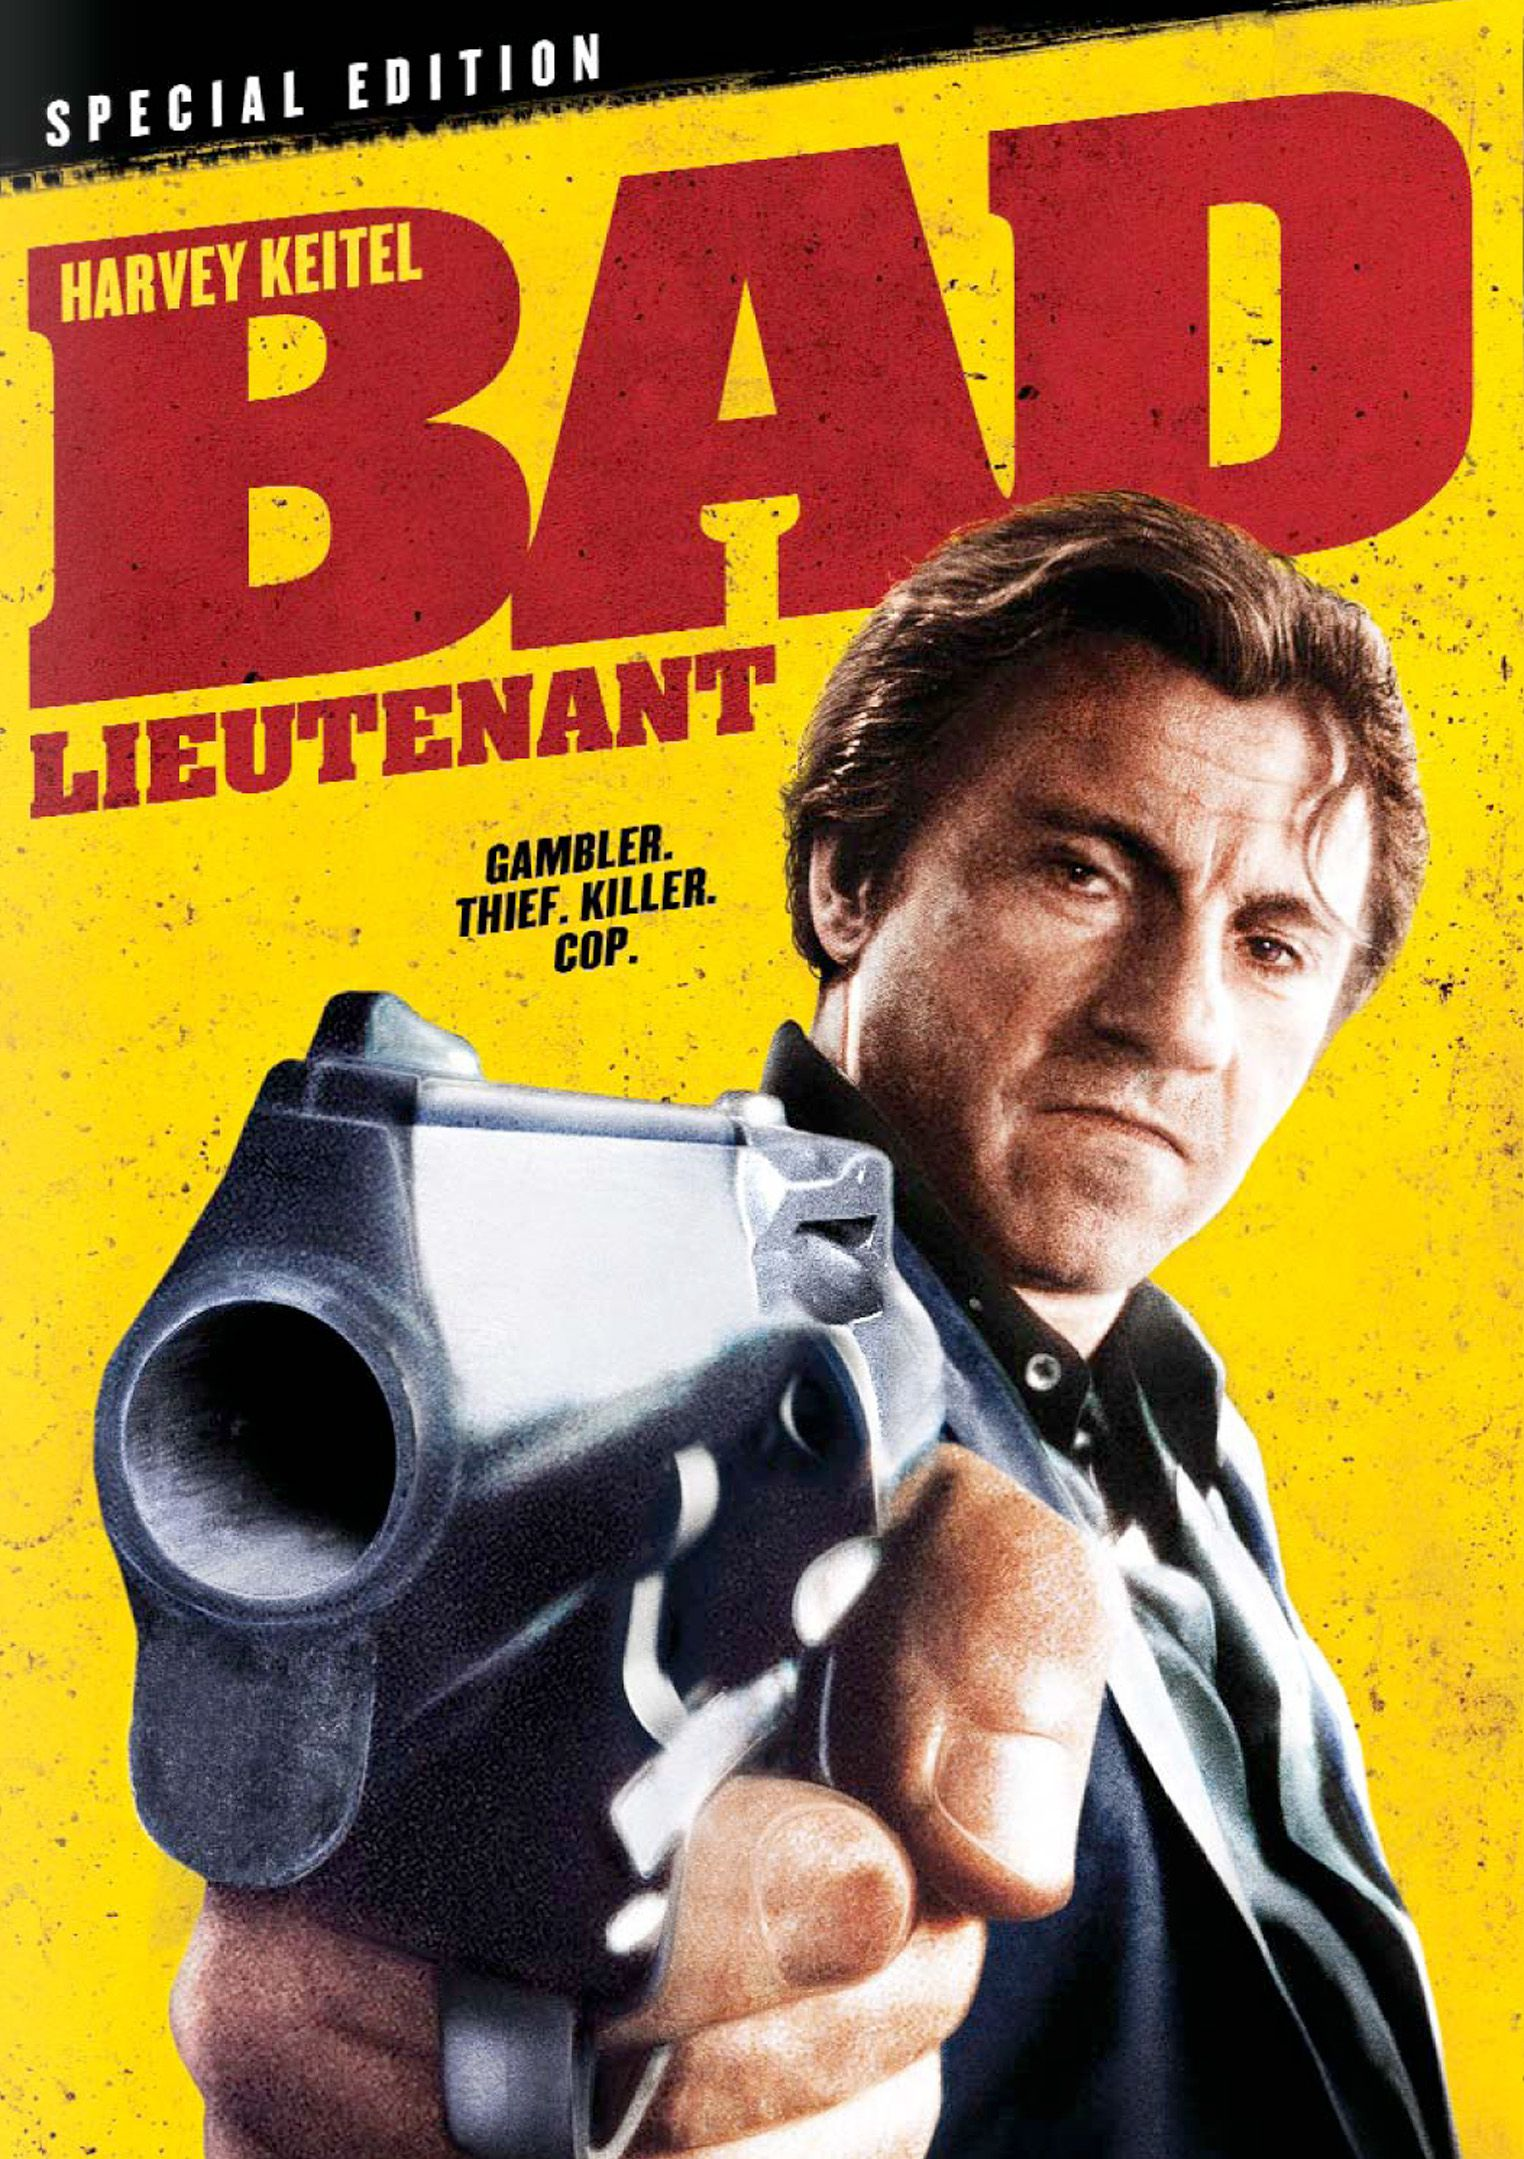 Bad Lieutenant (1992) - Directed by: Abel FerraraStarring: Harvey Keitel, Frankie Thorn, Zoe LundRated: NC-17 for Sexual Violence, Strong Sexual Situations and Dialogue, Graphic Drug UseRunning Time: 1 h 36 mTMM Score: 4 stars out of 5STRENGTHS: Acting, Writing, DirectingWEAKNESSES: Content Will Deter Some Viewers, Some Melodrama